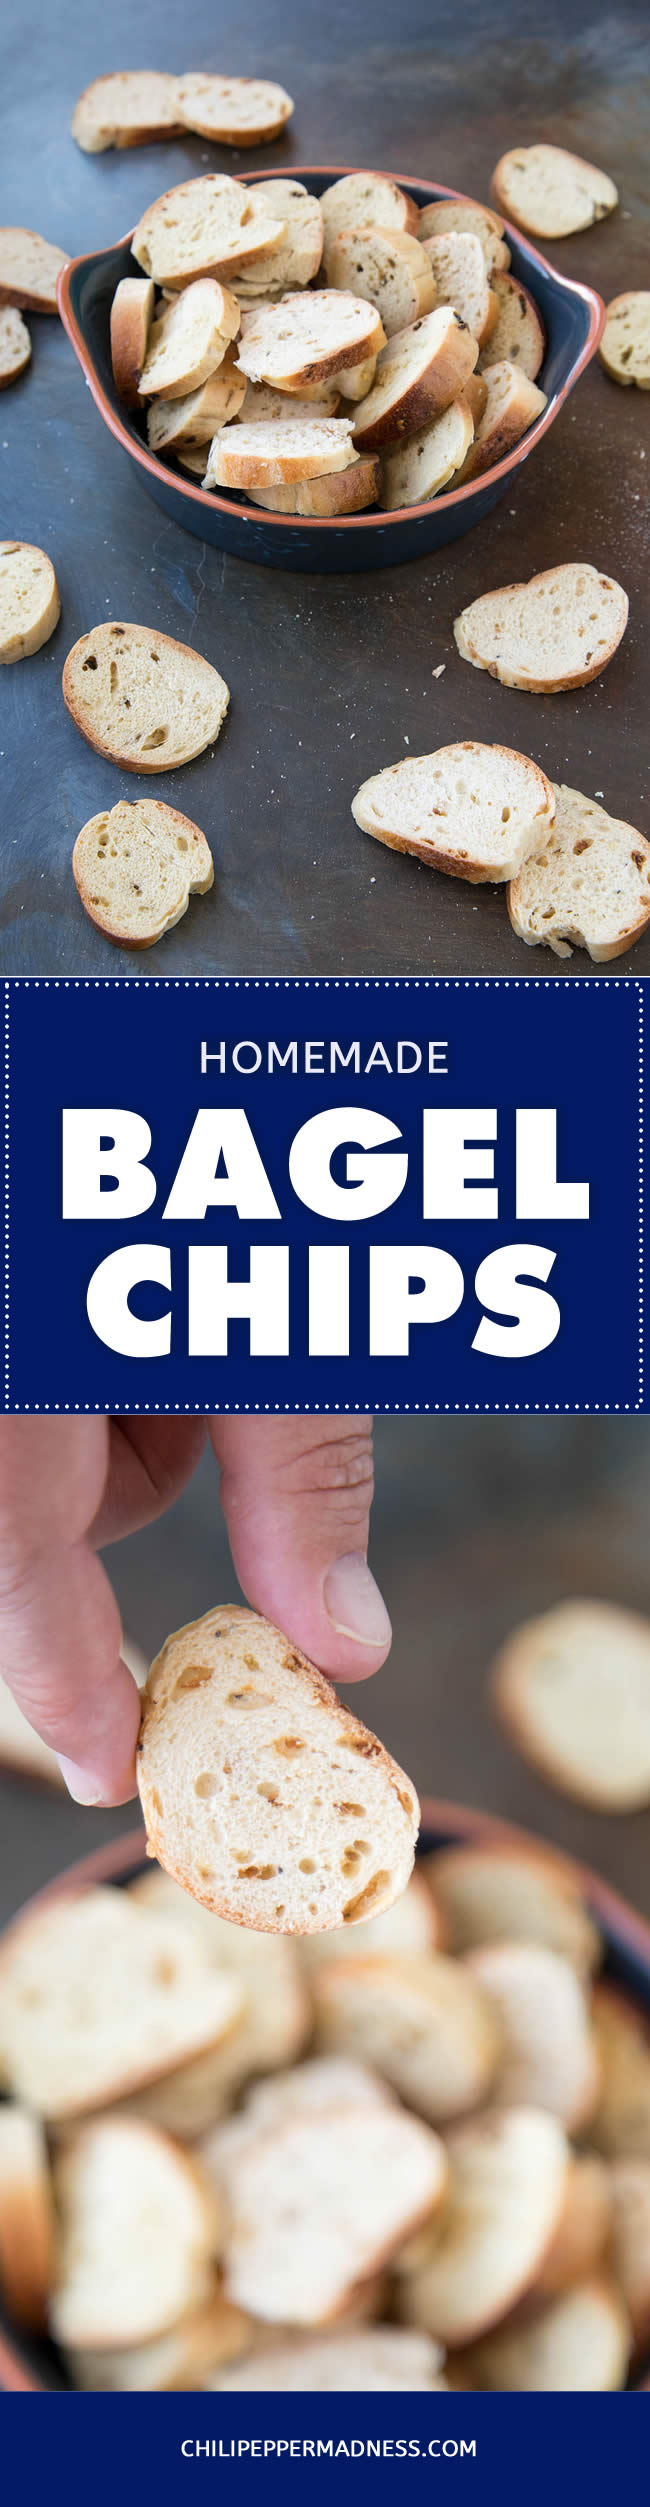 Homemade Bagel Chips - Recipe (Oven Baked or Dehydrator Method)